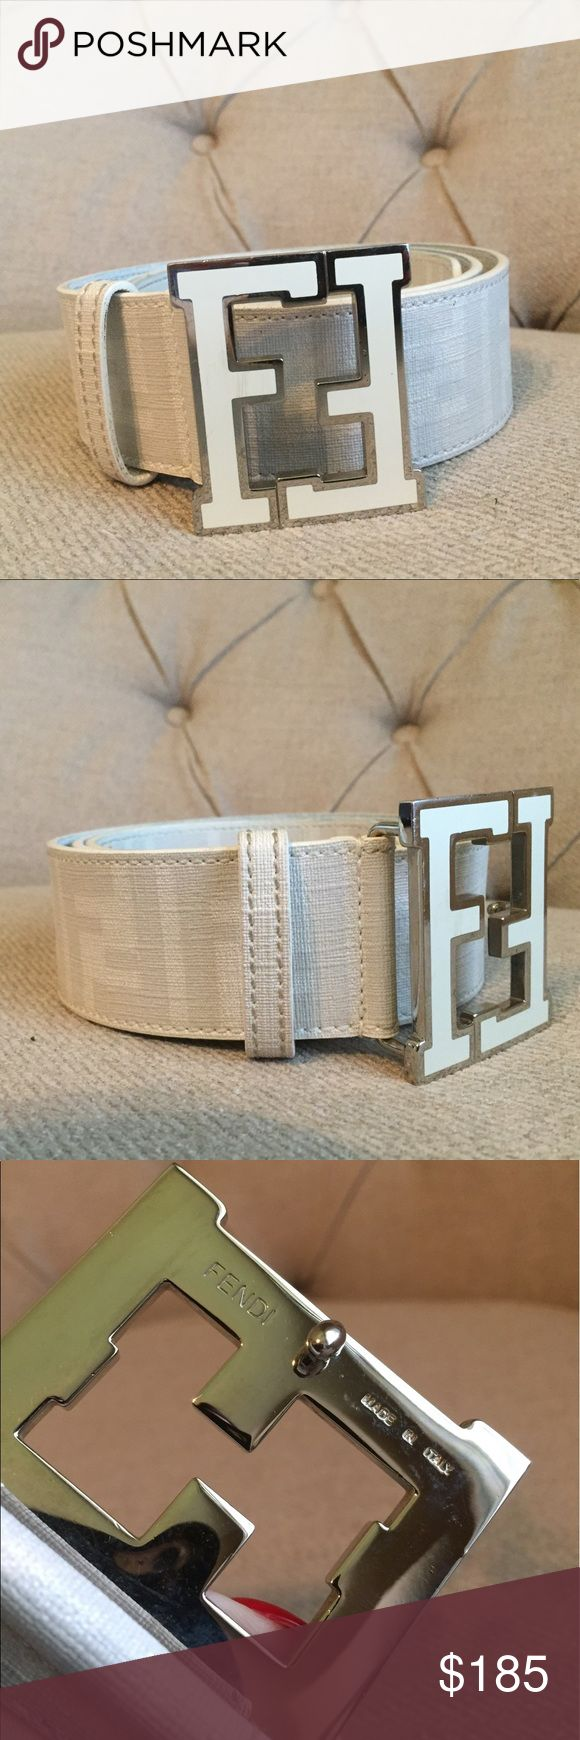 Fendi belt White canvas fendi belt size 90/36 has stain which I did not try to remove as seen in the last photo.. otherwise great condition slight color transfer but only on the interior of the belt. Yes it's authentic Fendi Accessories Belts